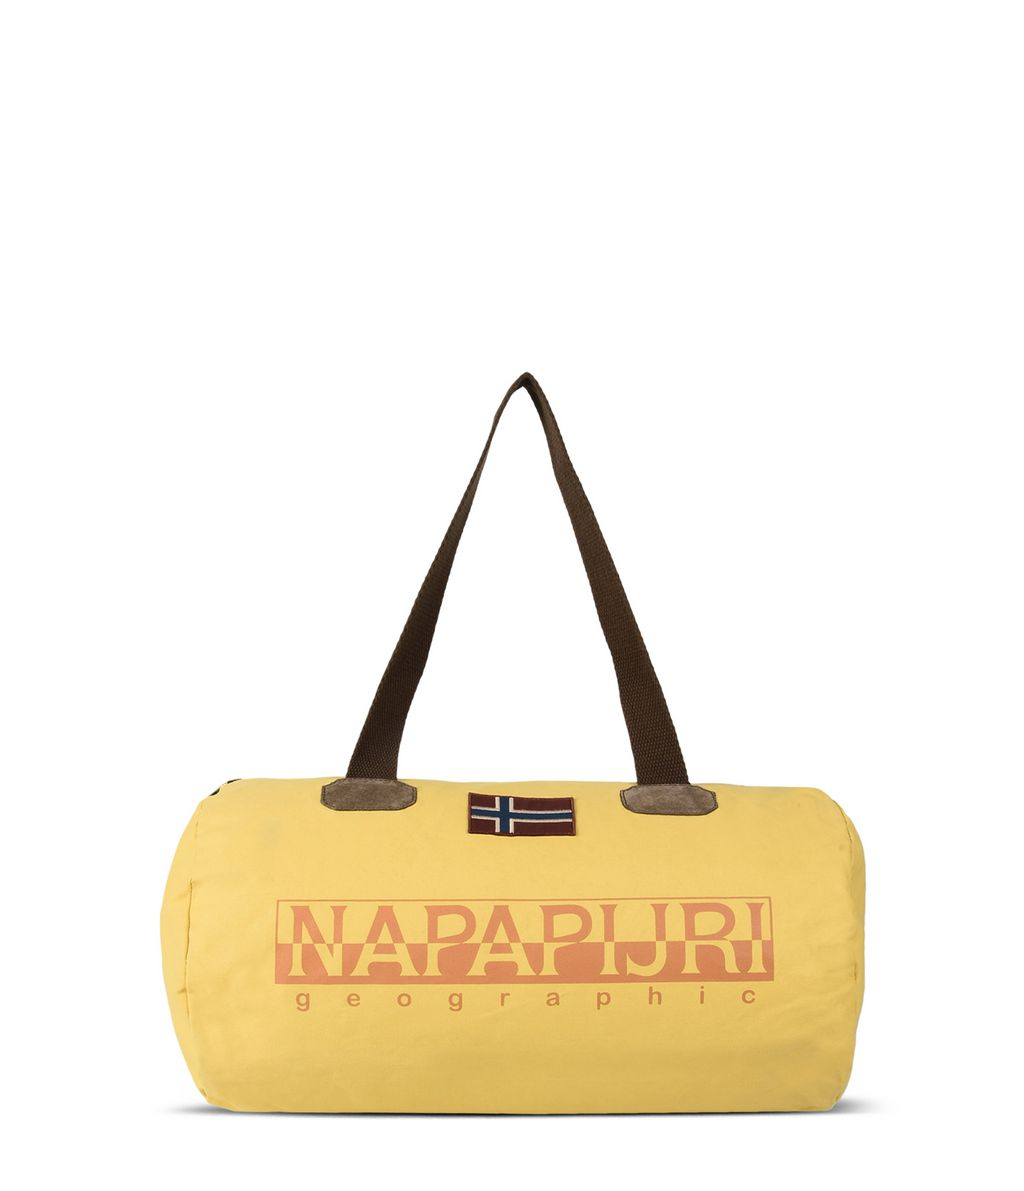 NAPAPIJRI BERING SMALL  TRAVEL BAG,YELLOW